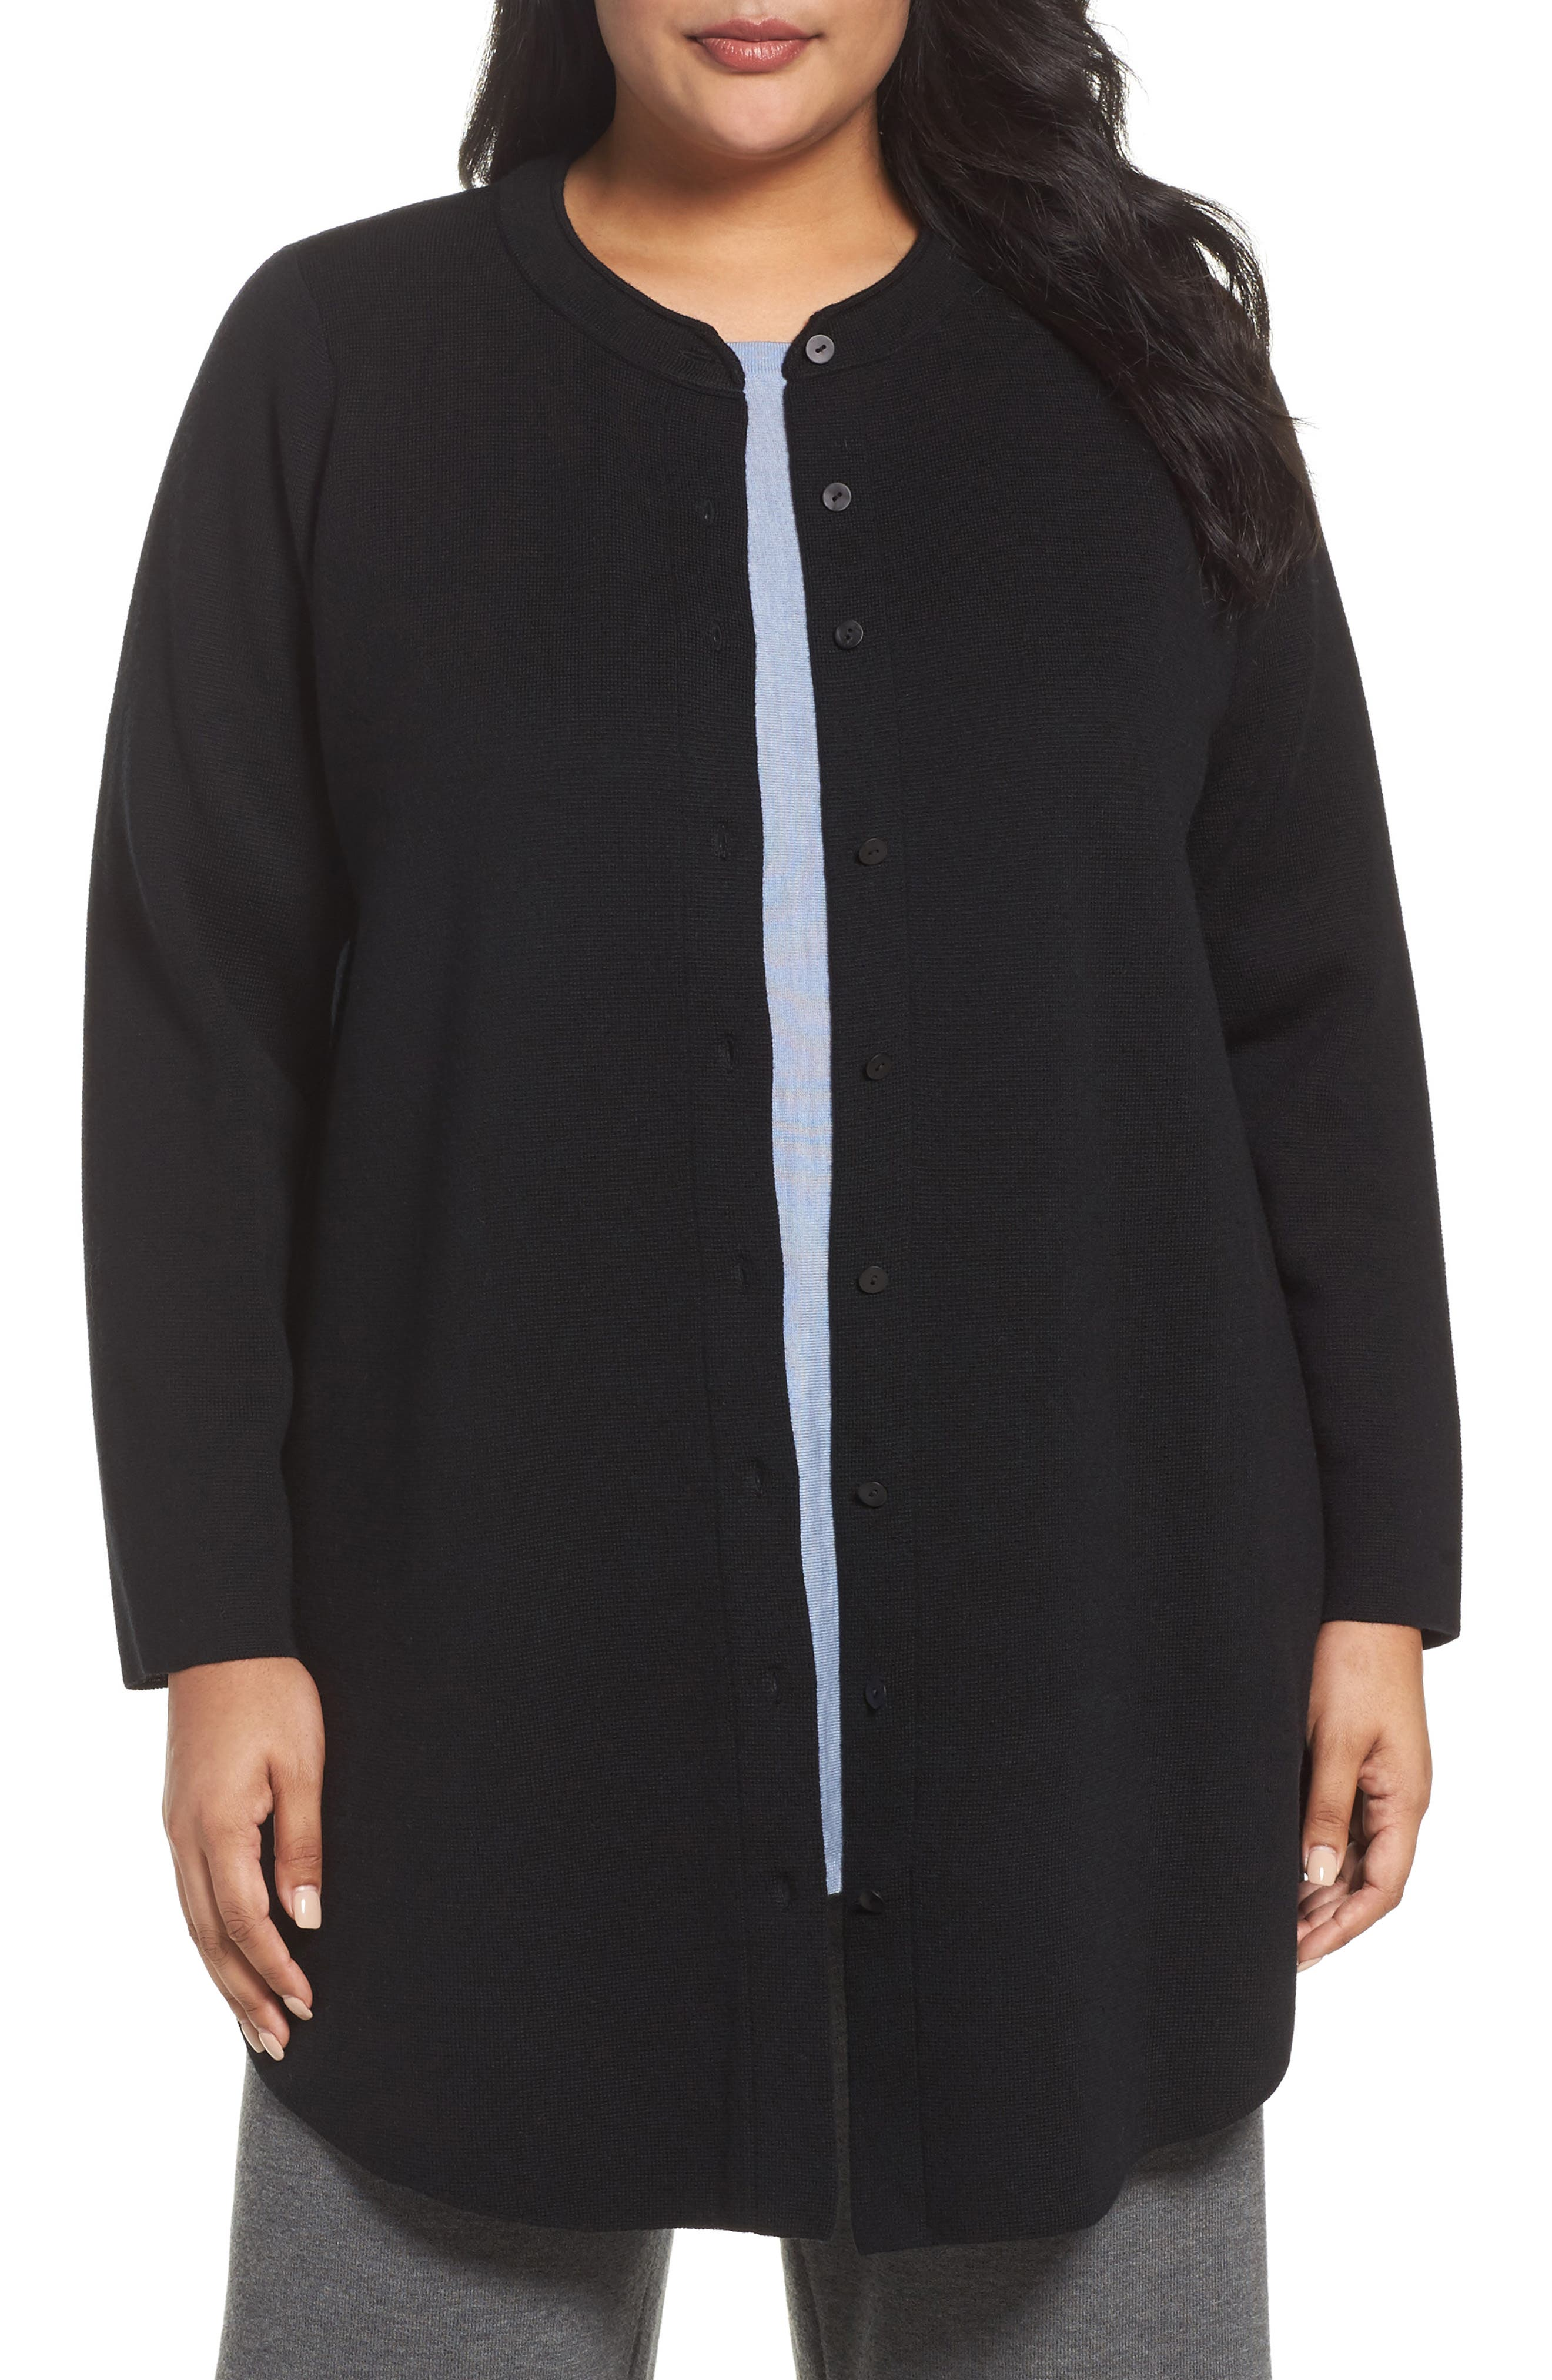 Alternate Image 1 Selected - Eileen Fisher Mandarin Collar Merino Cardigan (Plus Size)